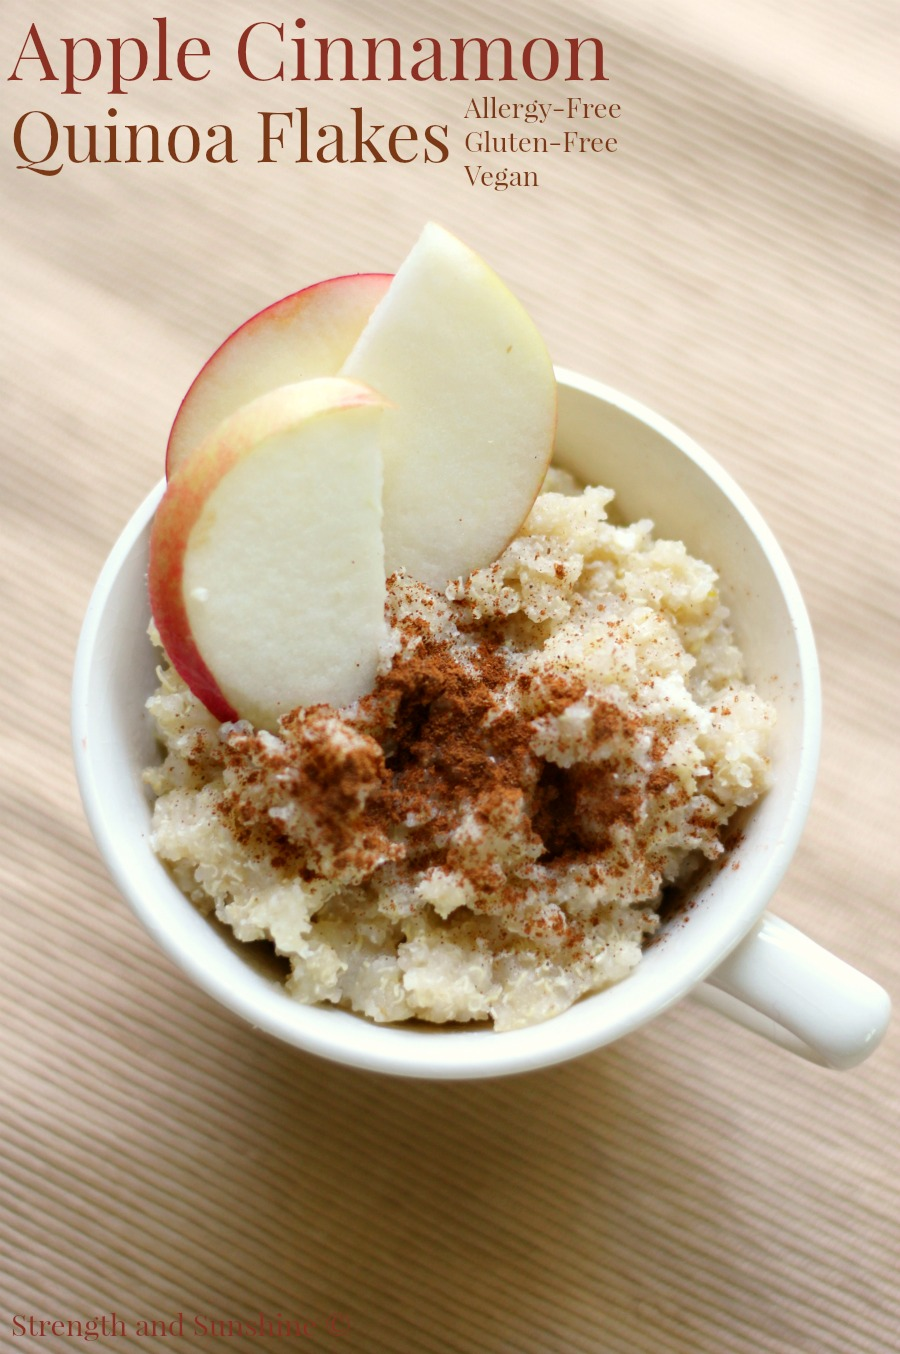 Apple Cinnamon Quinoa Flakes | Strength and Sunshine @RebeccaGF666 A classic flavor combo that brings warmth and cozy feelings to your healthy breakfast! A gluten-free, vegan, and allergy-free recipe for Apple Cinnamon Quinoa Flakes! Single-serve and made right in the microwave for a quick and efficient, but tasty breakfast!